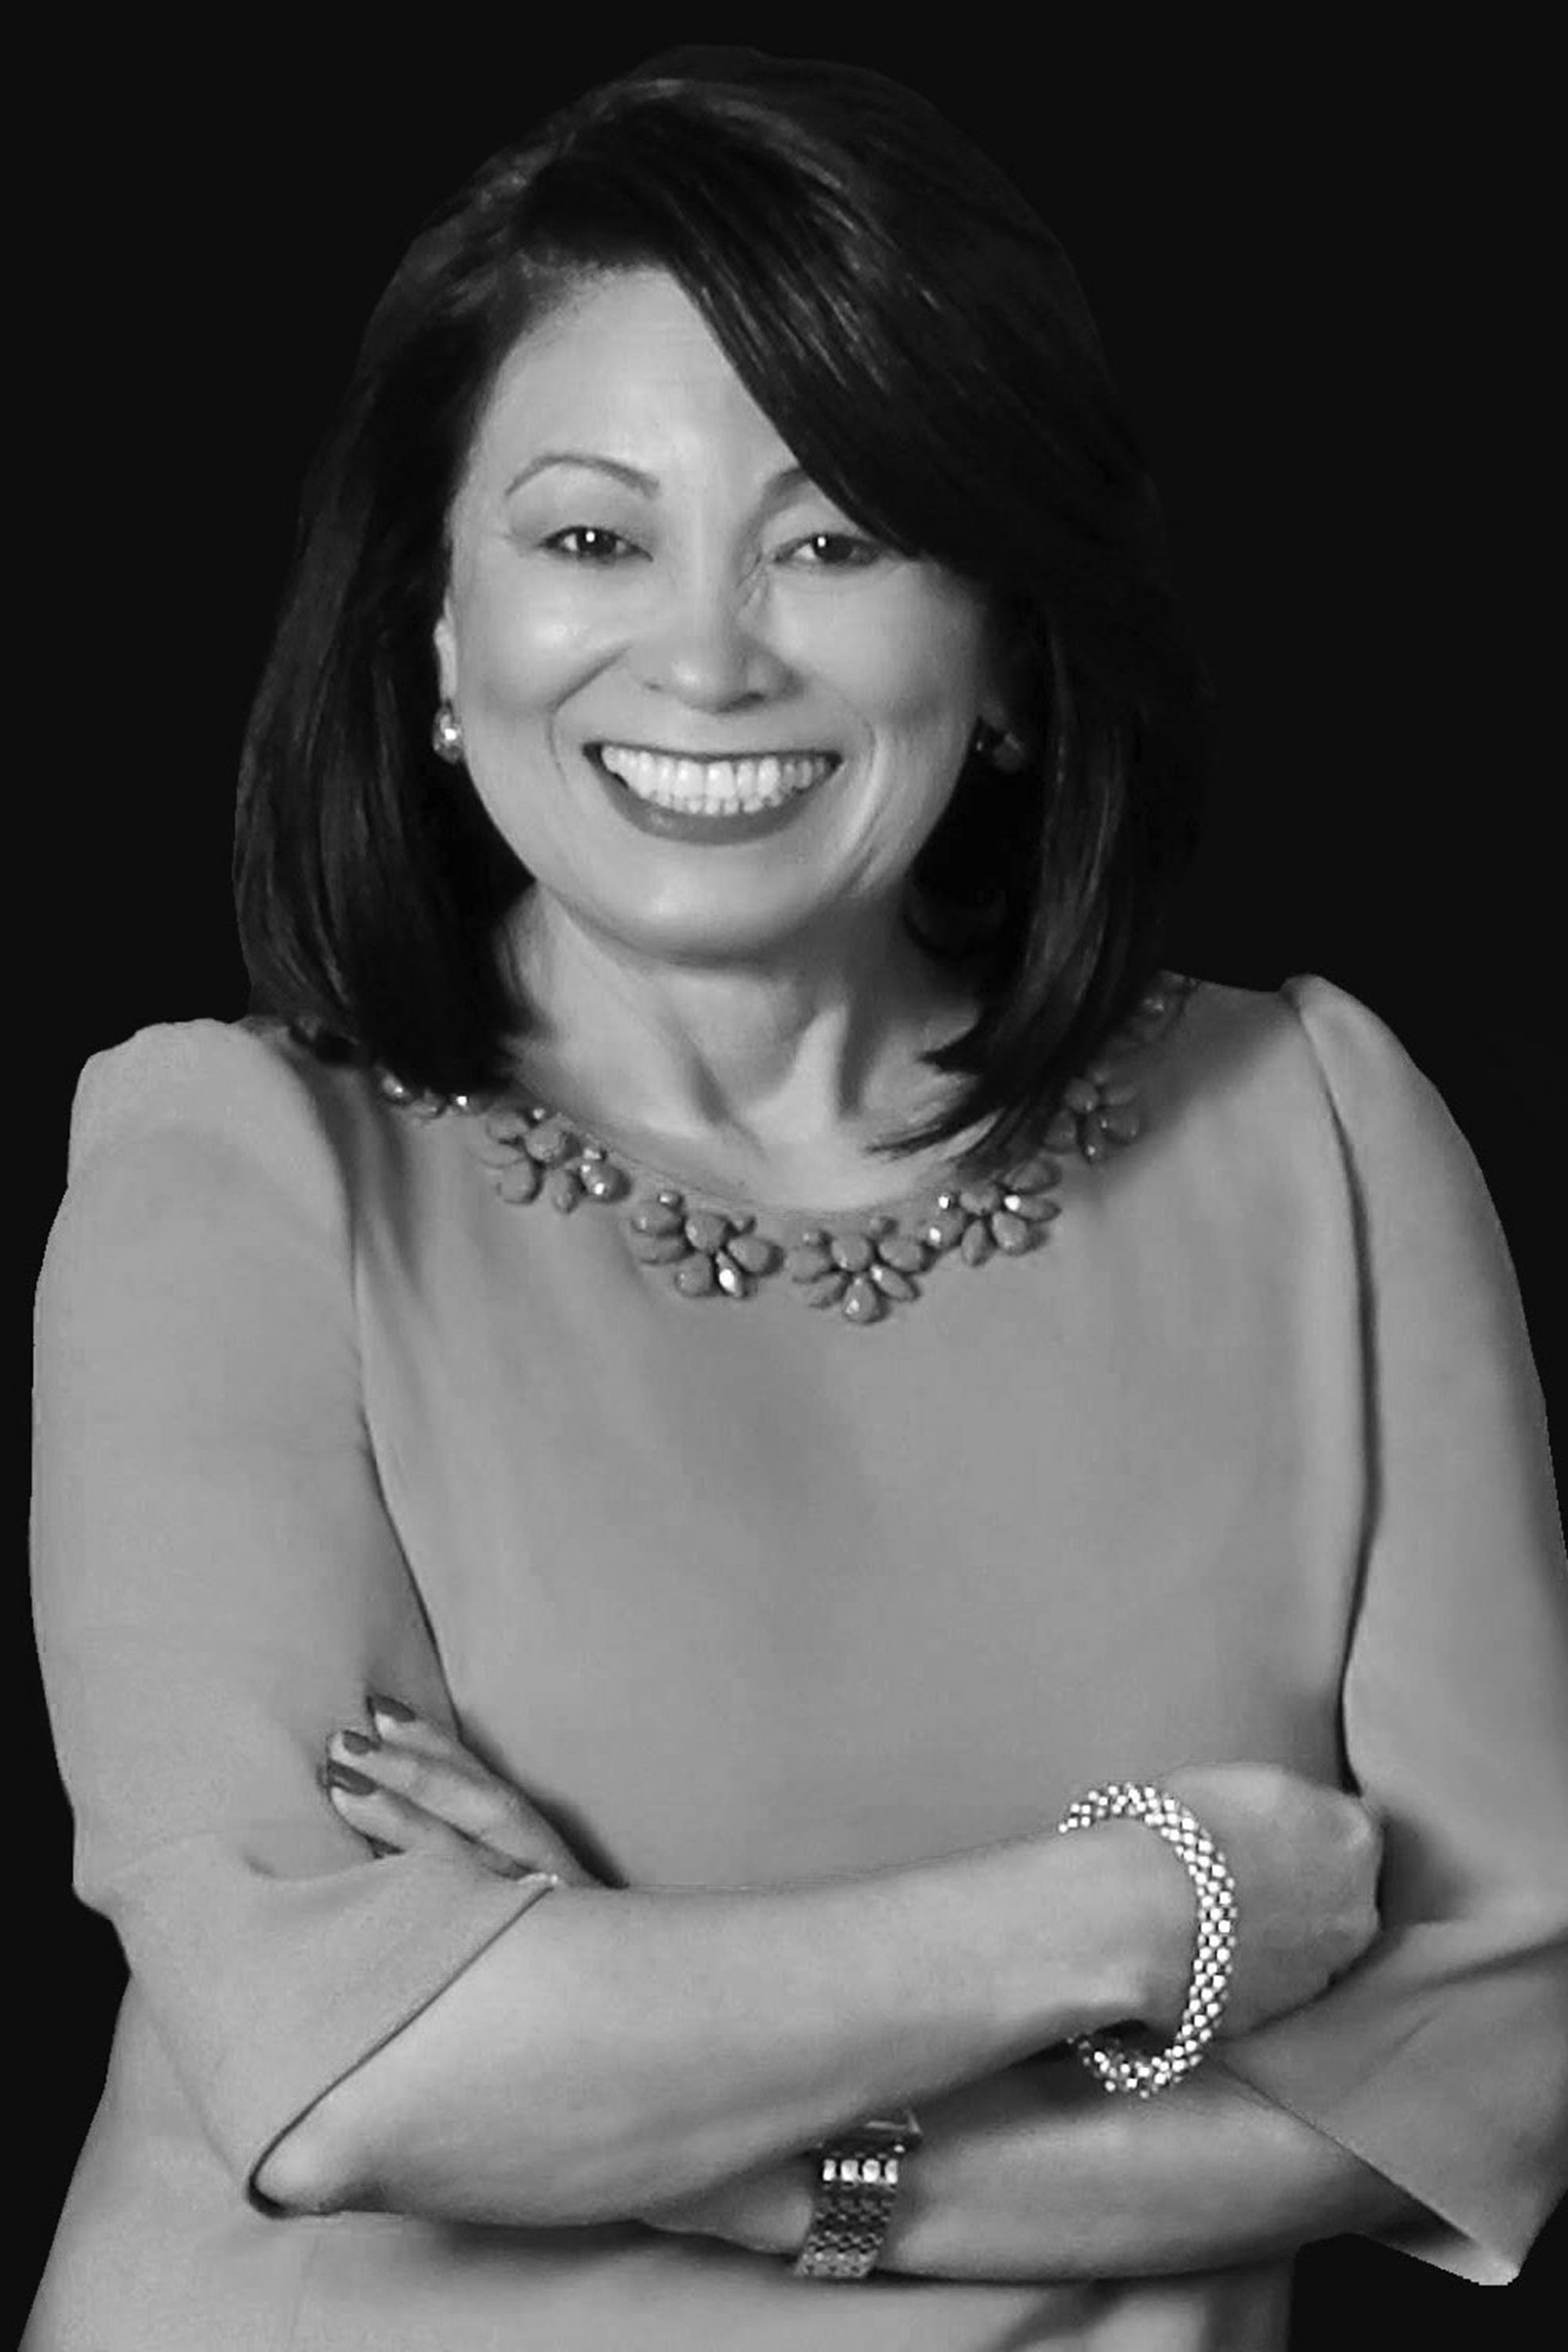 "<p><strong data-redactor-tag=""strong"" data-verified=""redactor"">Dr. Gloria Bonilla-Santiago, 63, Founder of&nbsp&#x3B; <a href=""http://www.leapacademycharter.org"" target=""_blank"" data-tracking-id=""recirc-text-link"">The LEAP&nbsp&#x3B;(Leadership, Education, and Partnership) Academy University Charter School</a>&nbsp&#x3B;</strong></p><p>